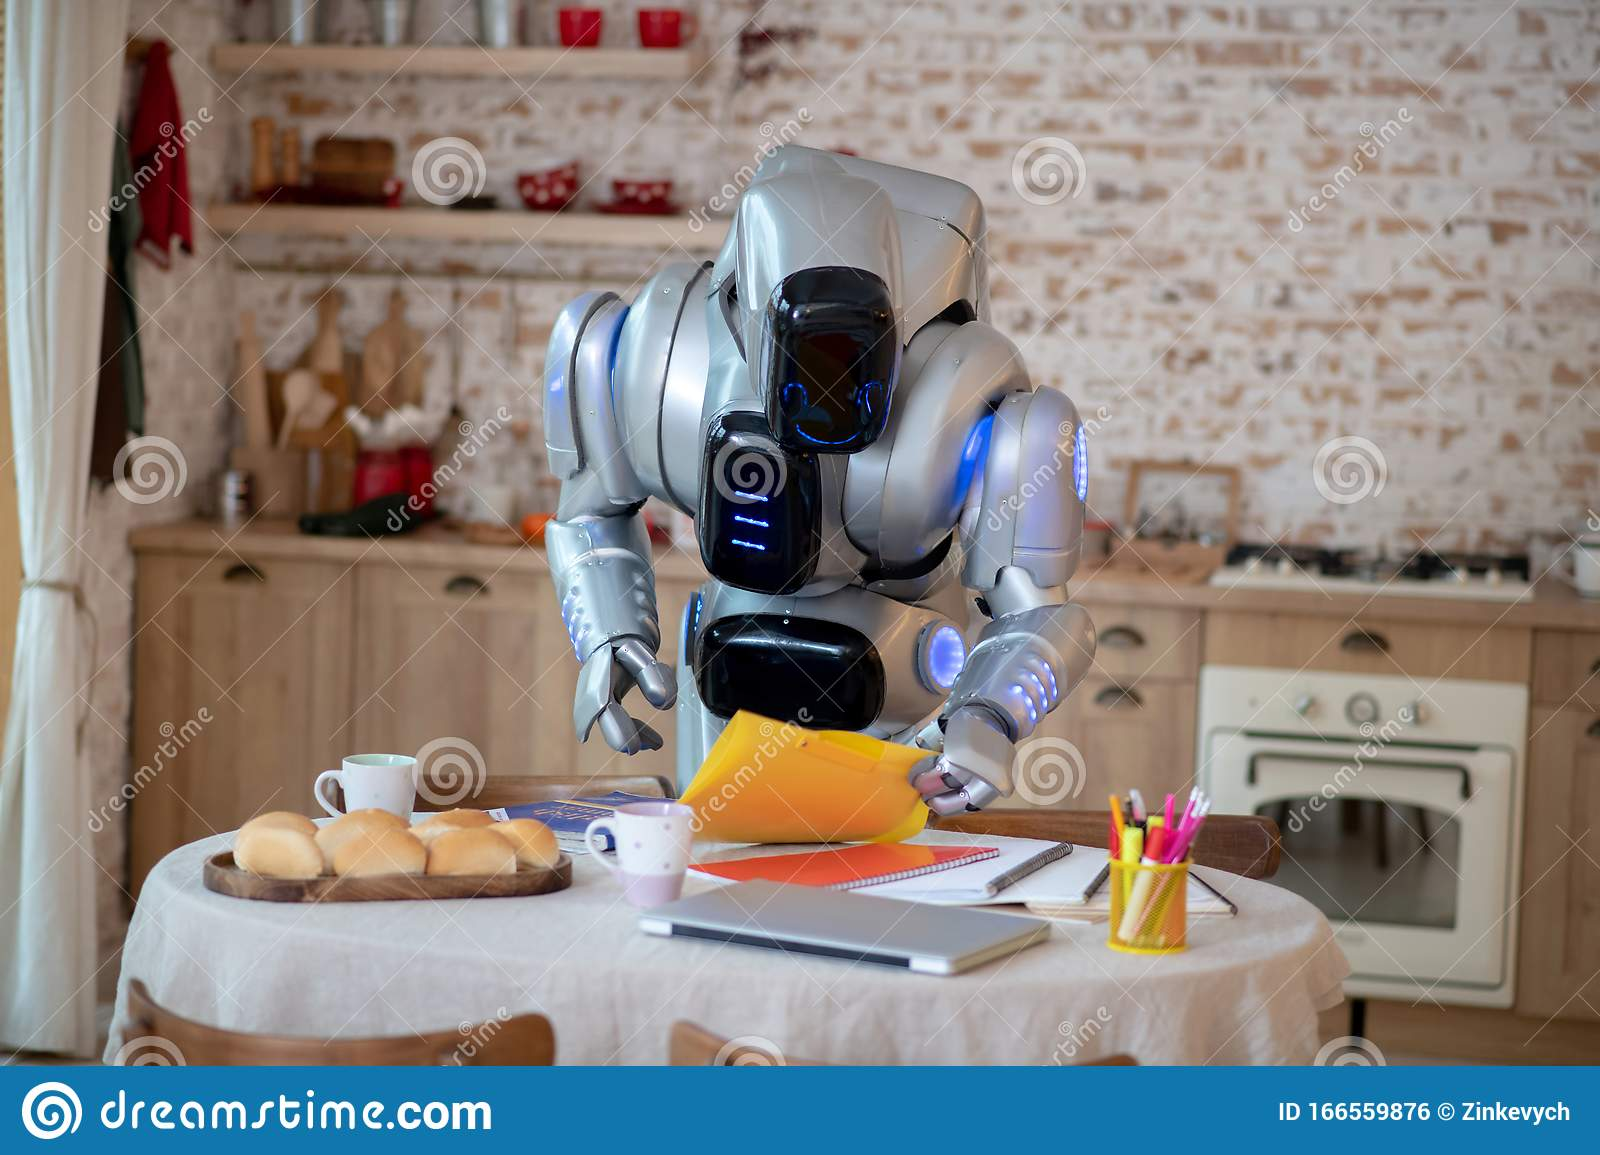 Robot Standing Near The Table In The Kitchen Stock Photo Image Of Science Holding 166559876